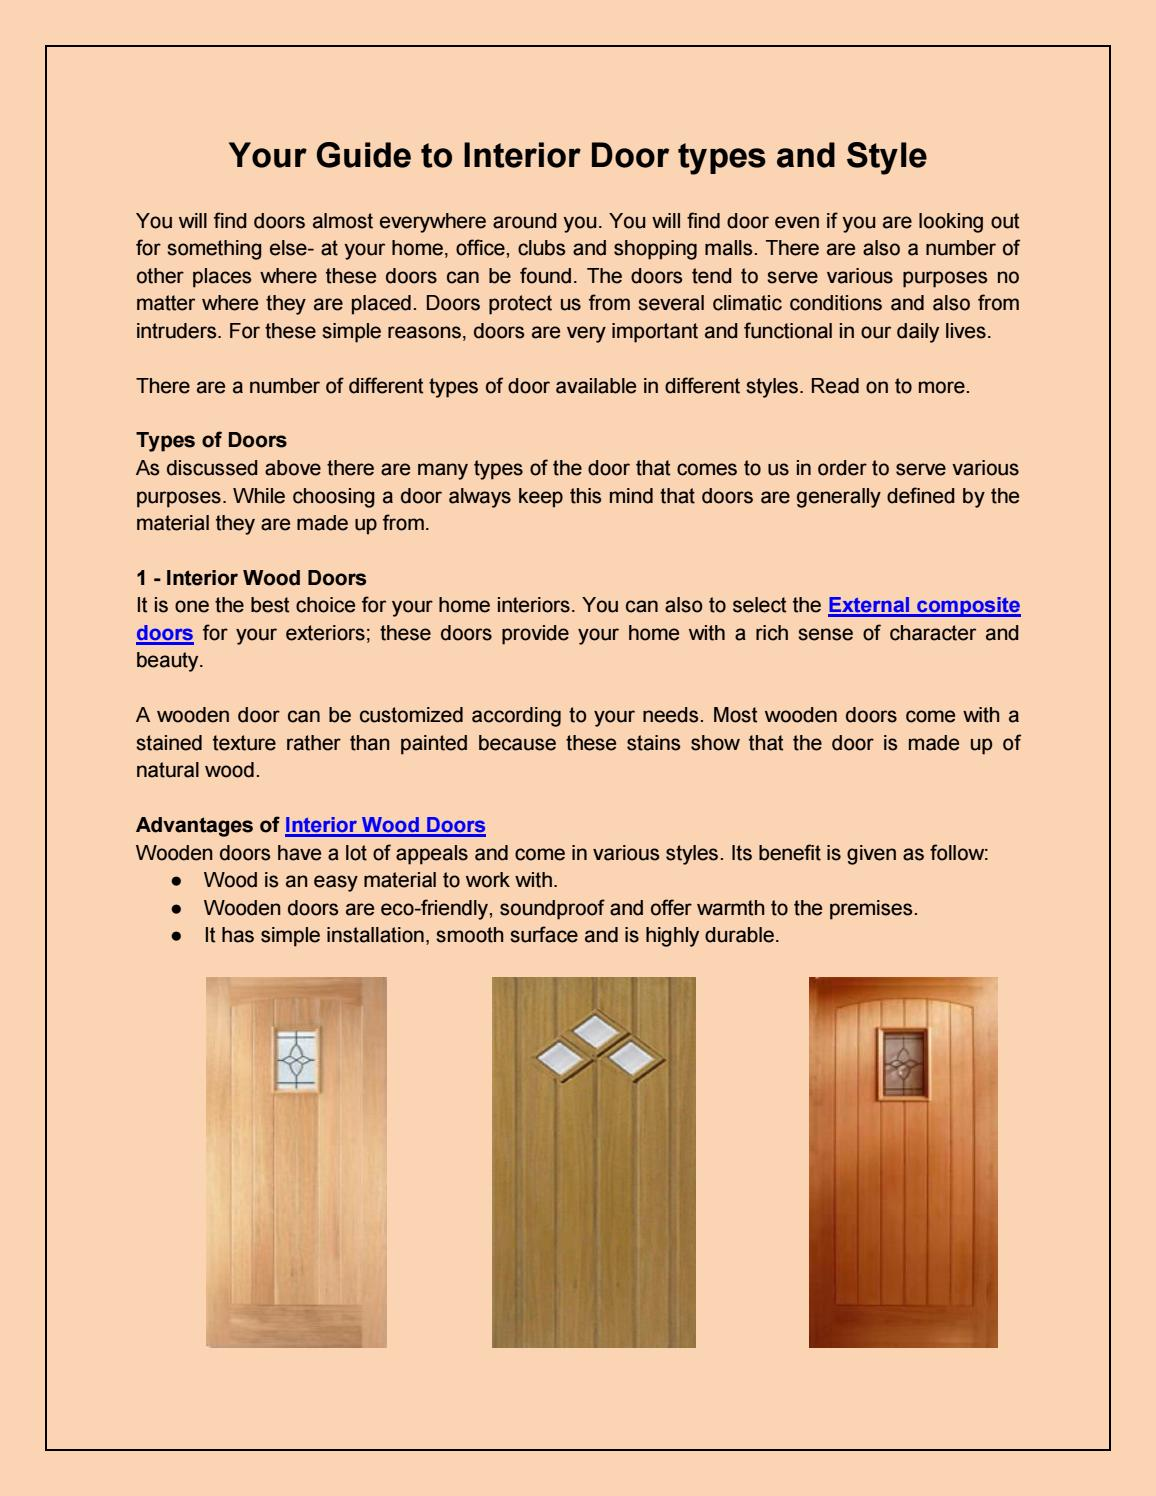 Your Guide To Interior Door Types And Style By Fine Doors Issuu